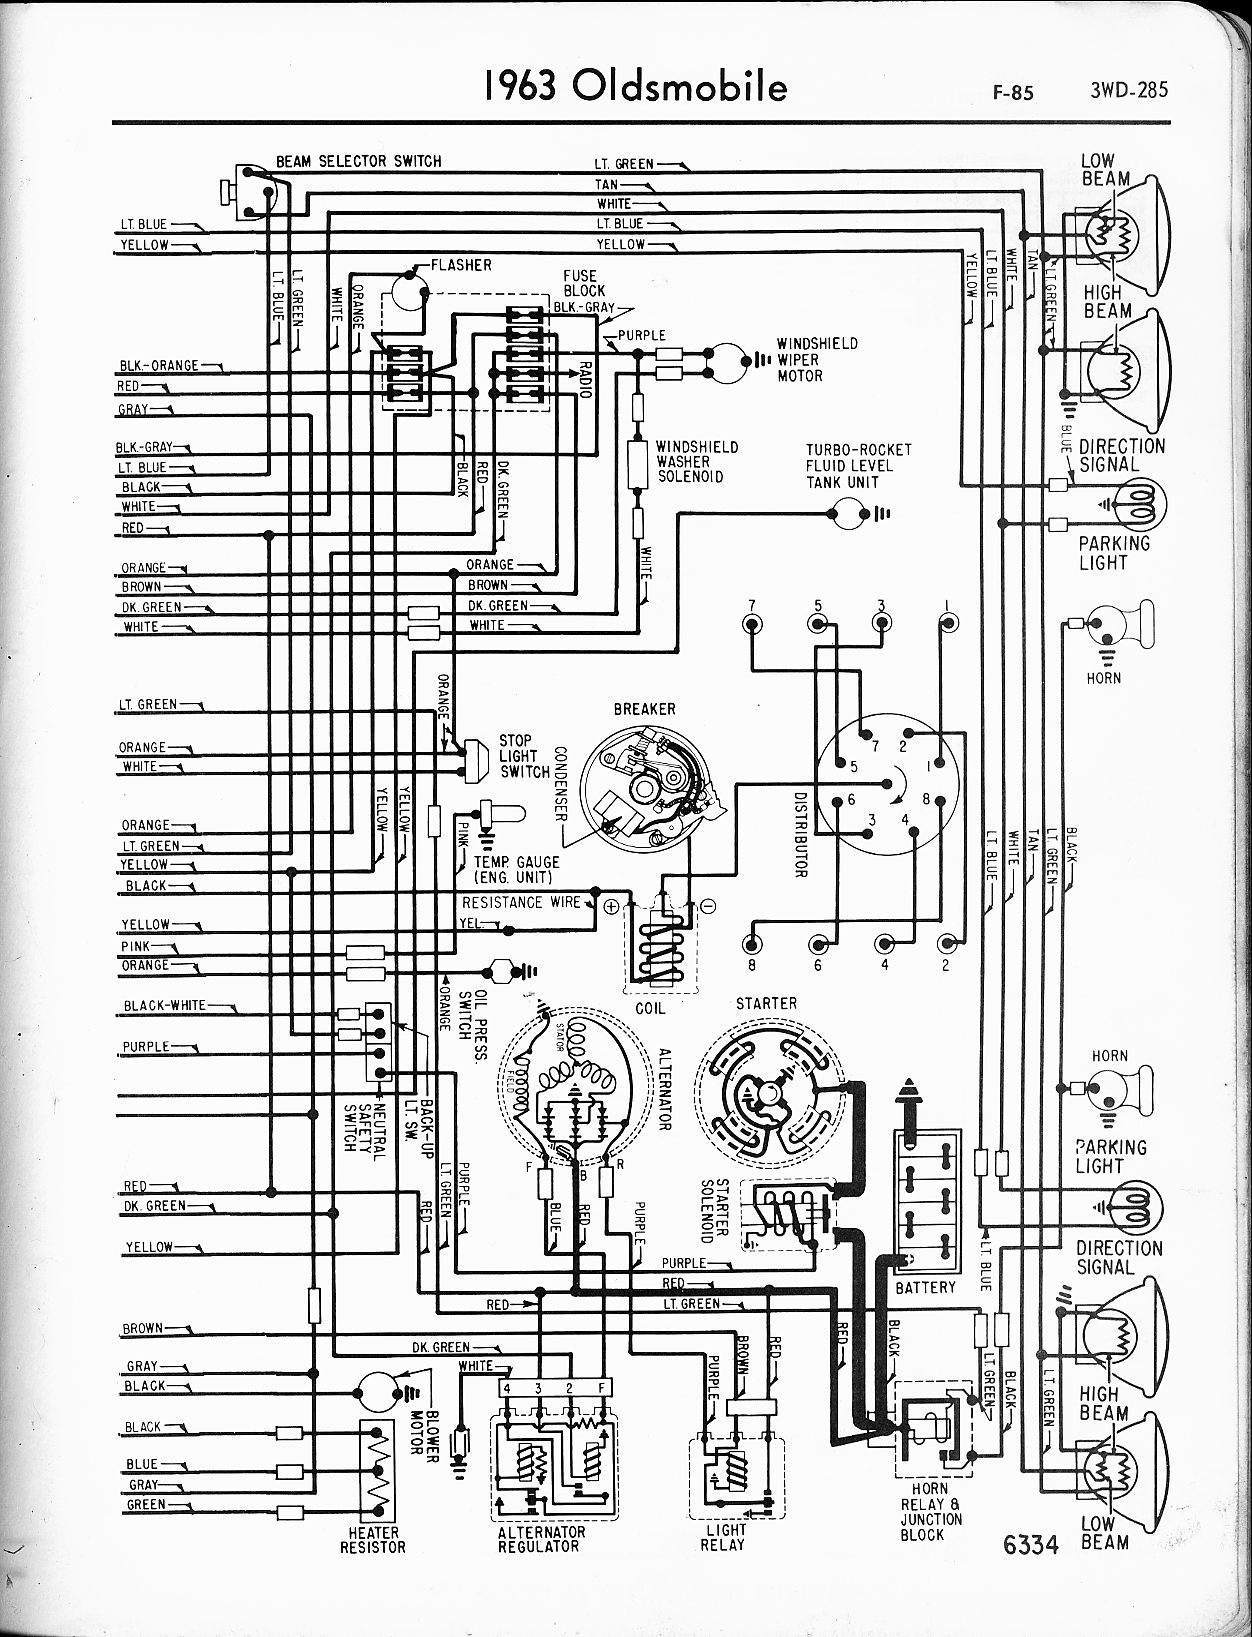 MWire5765 285 oldsmobile wiring diagrams the old car manual project caterham 7 wiring diagram at webbmarketing.co